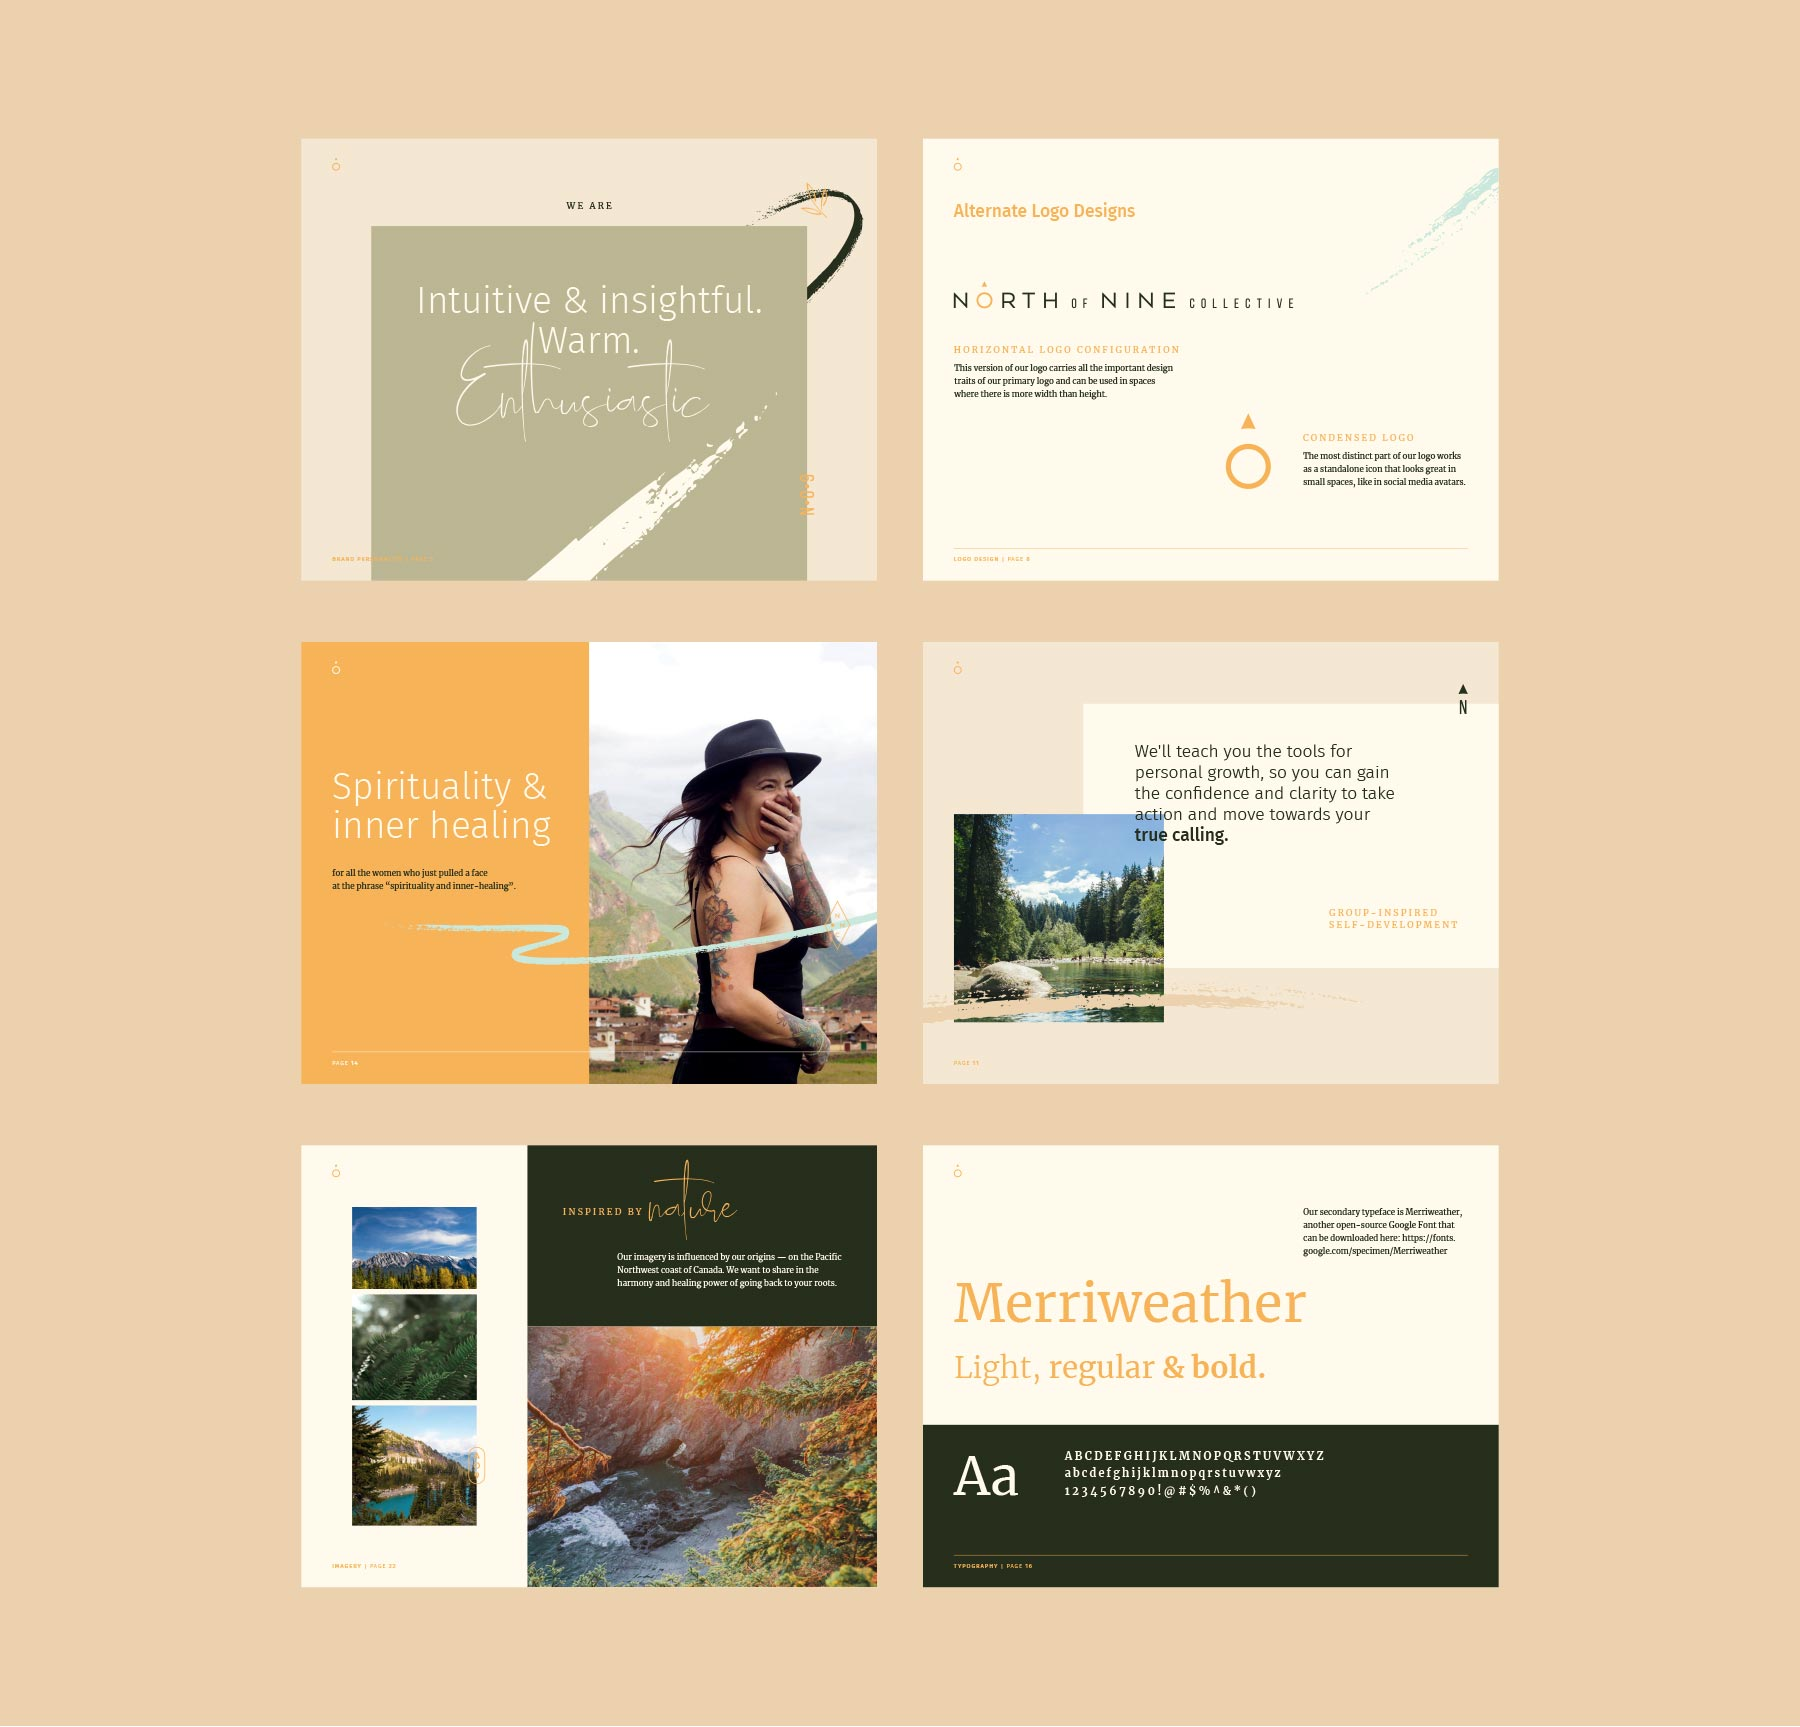 North of Nine Collective style guide layout designs, by Lisa Furze